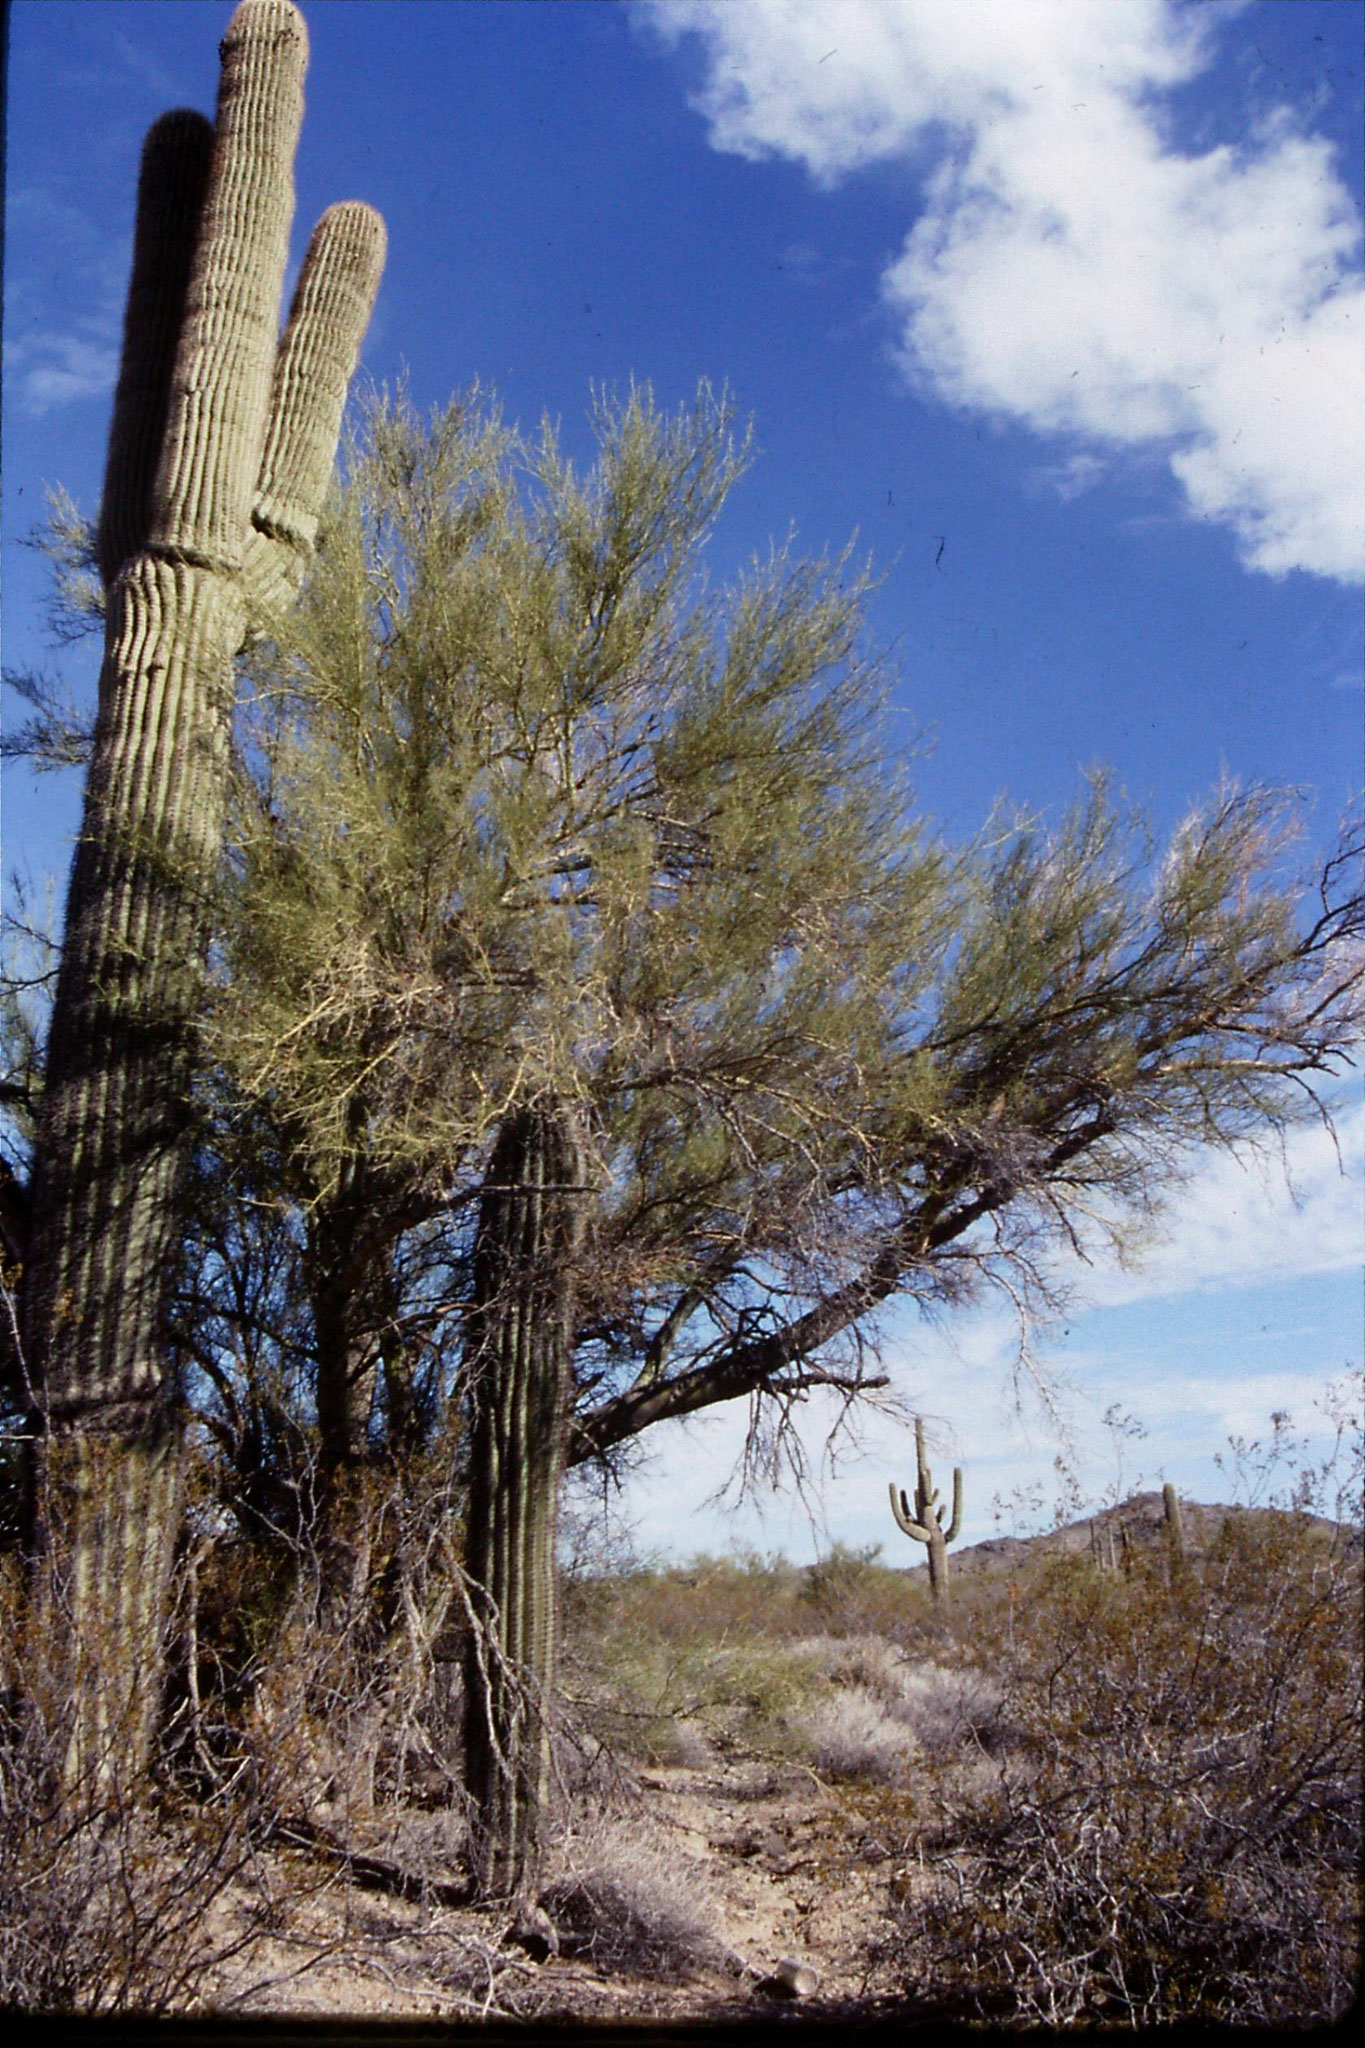 11/12/1990: 7: Saguaro cacti (10-20ft) between Salome and I-10